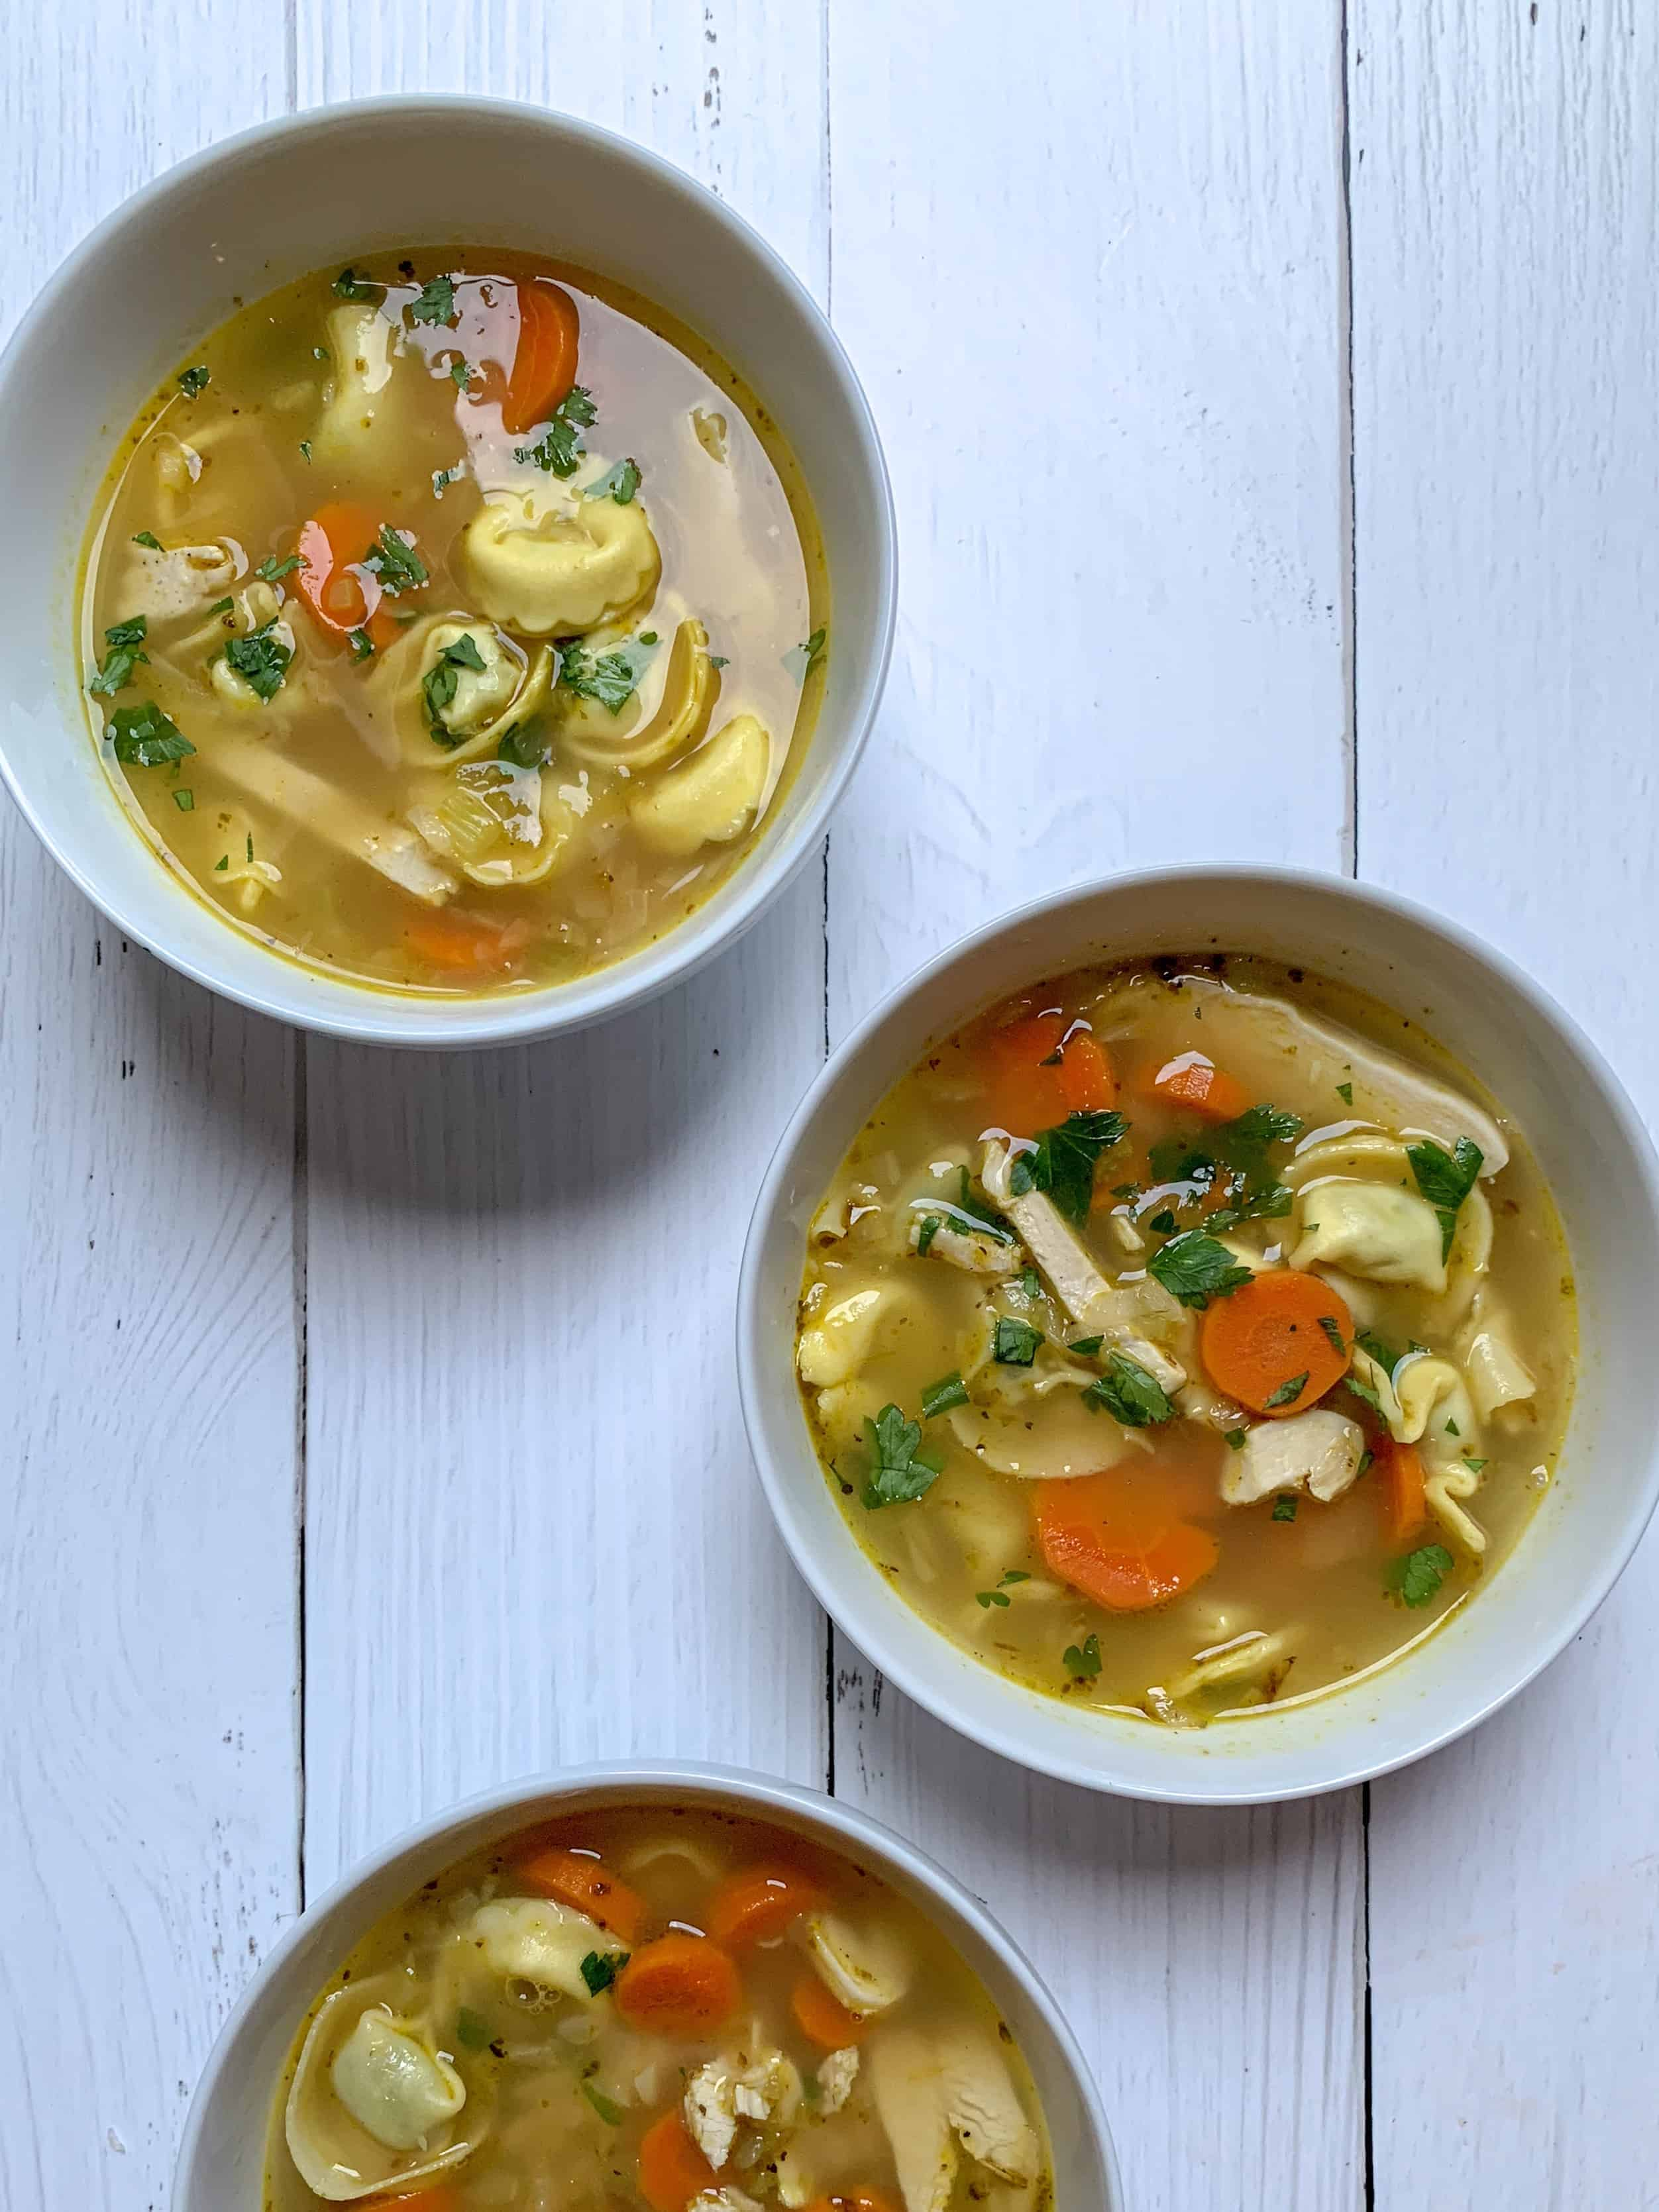 soup in bowls